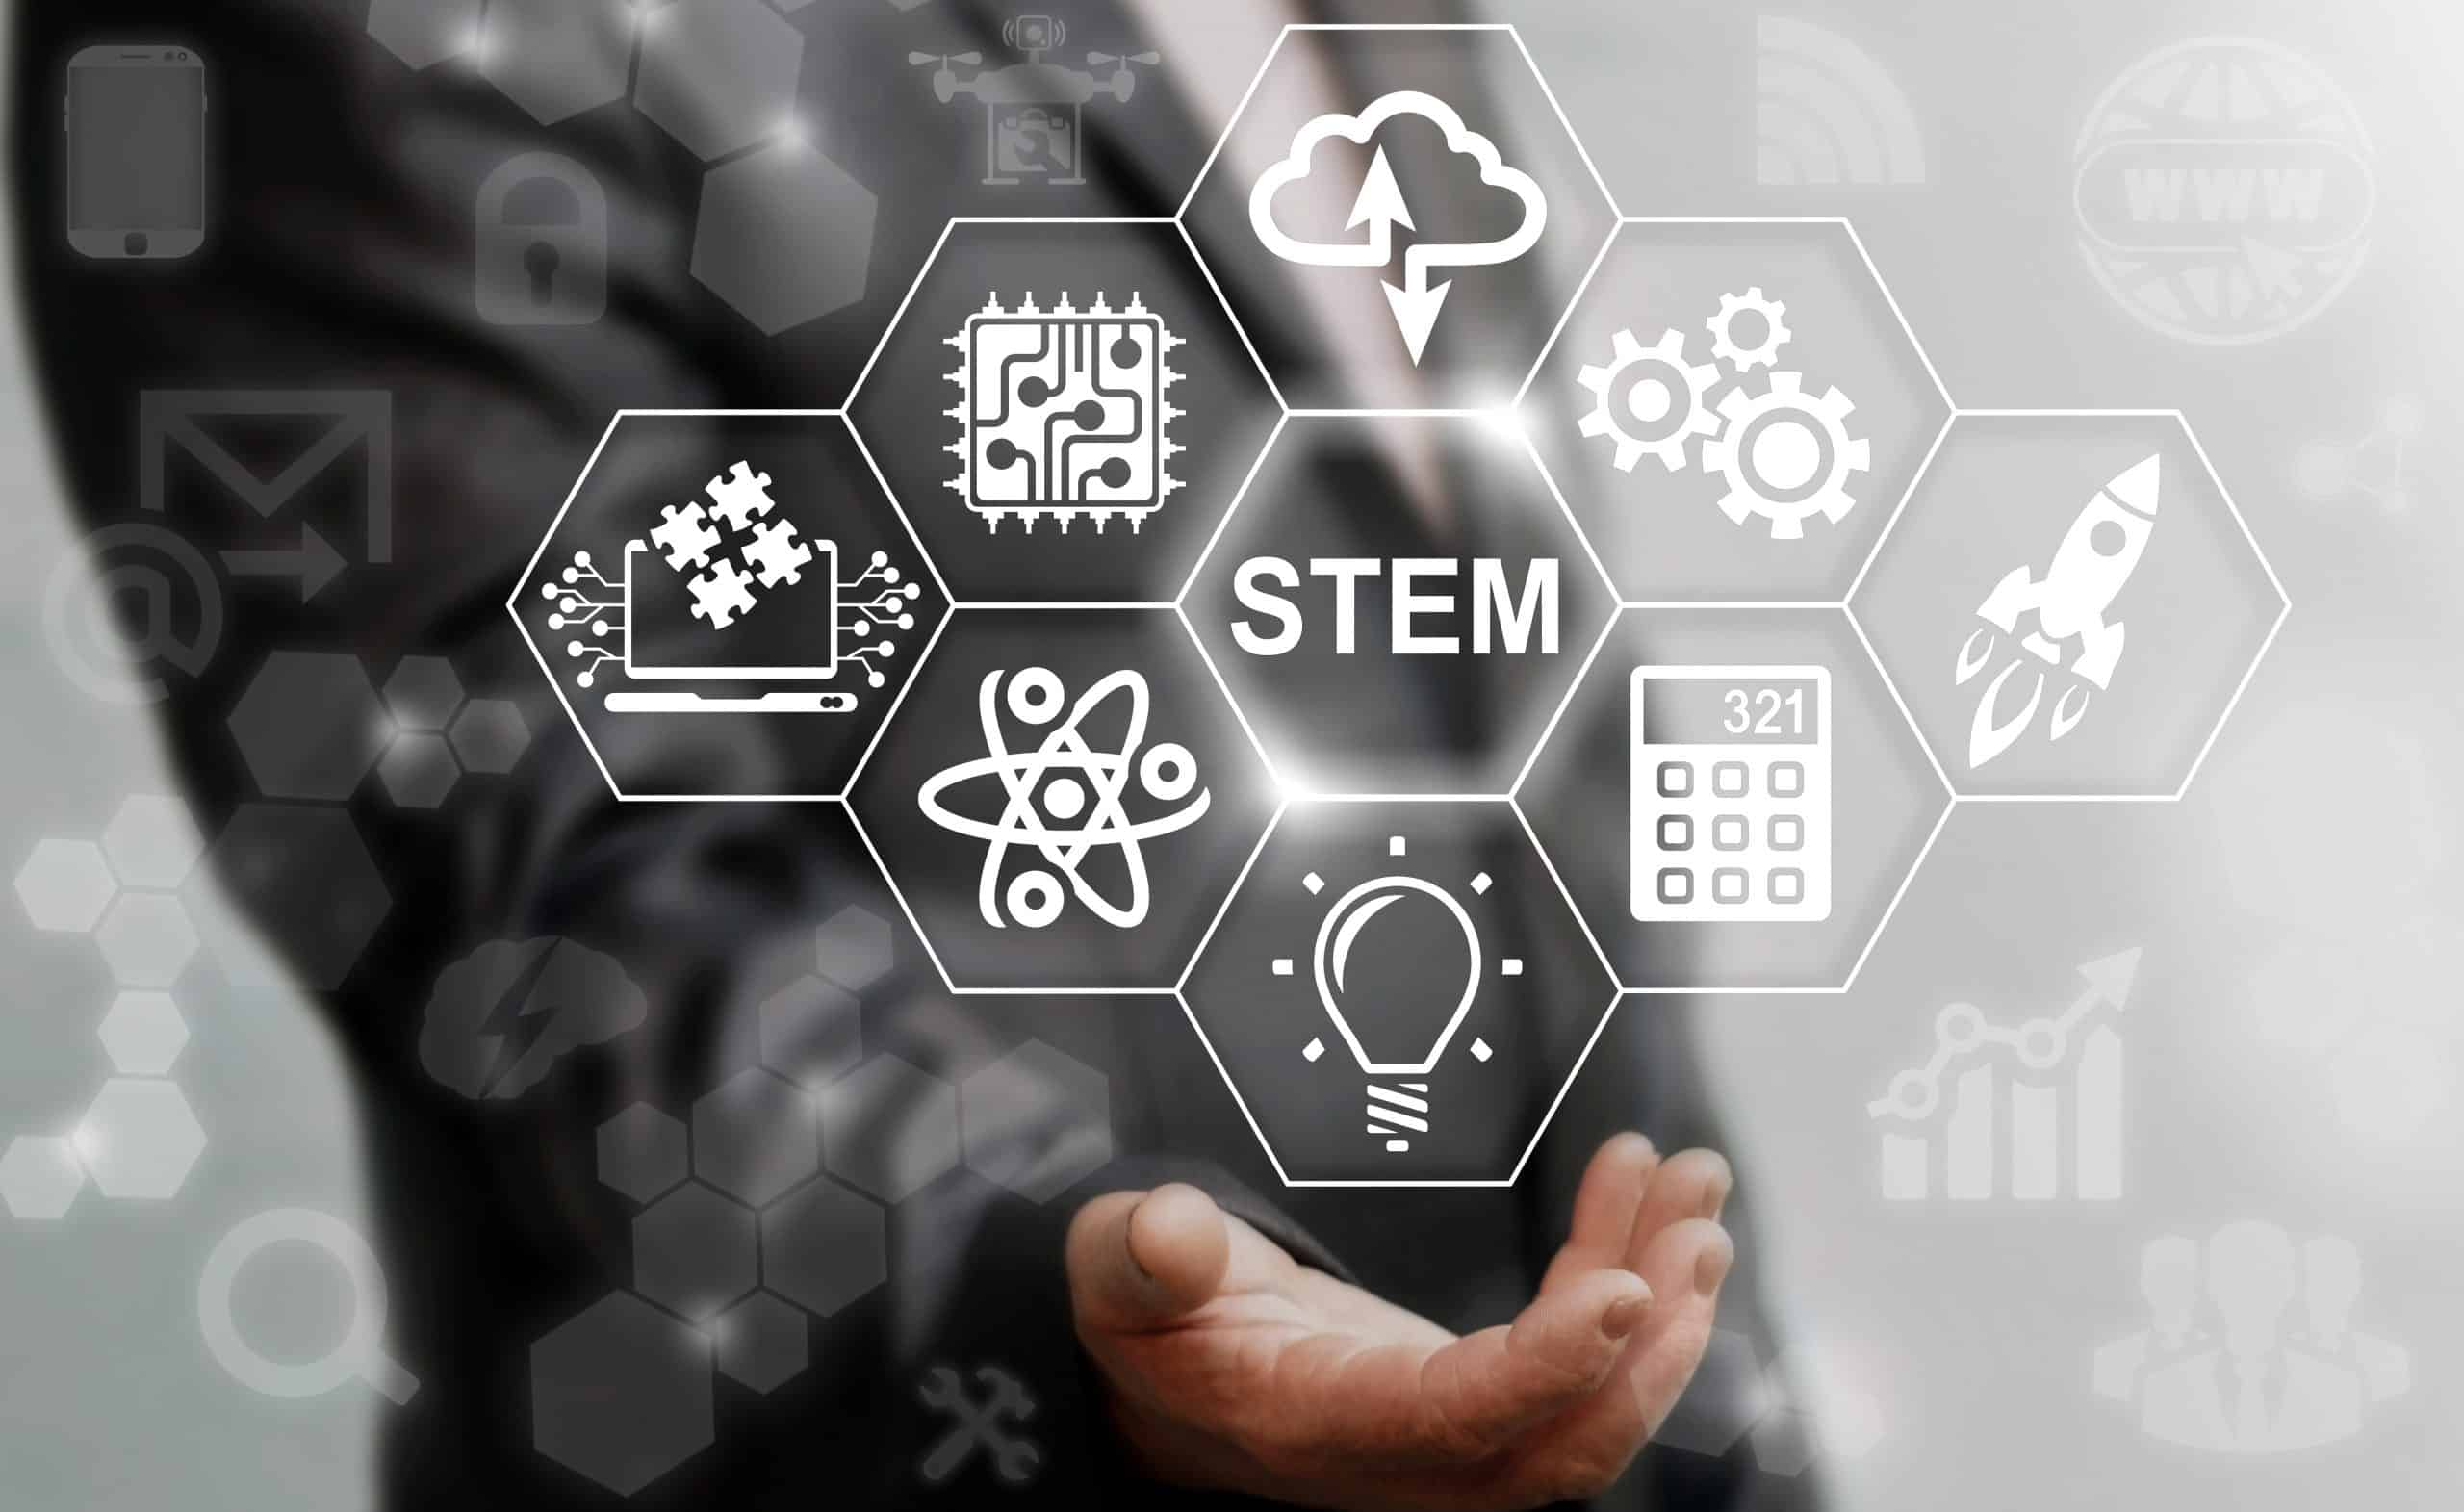 Science Technology Engineering Math education web icon